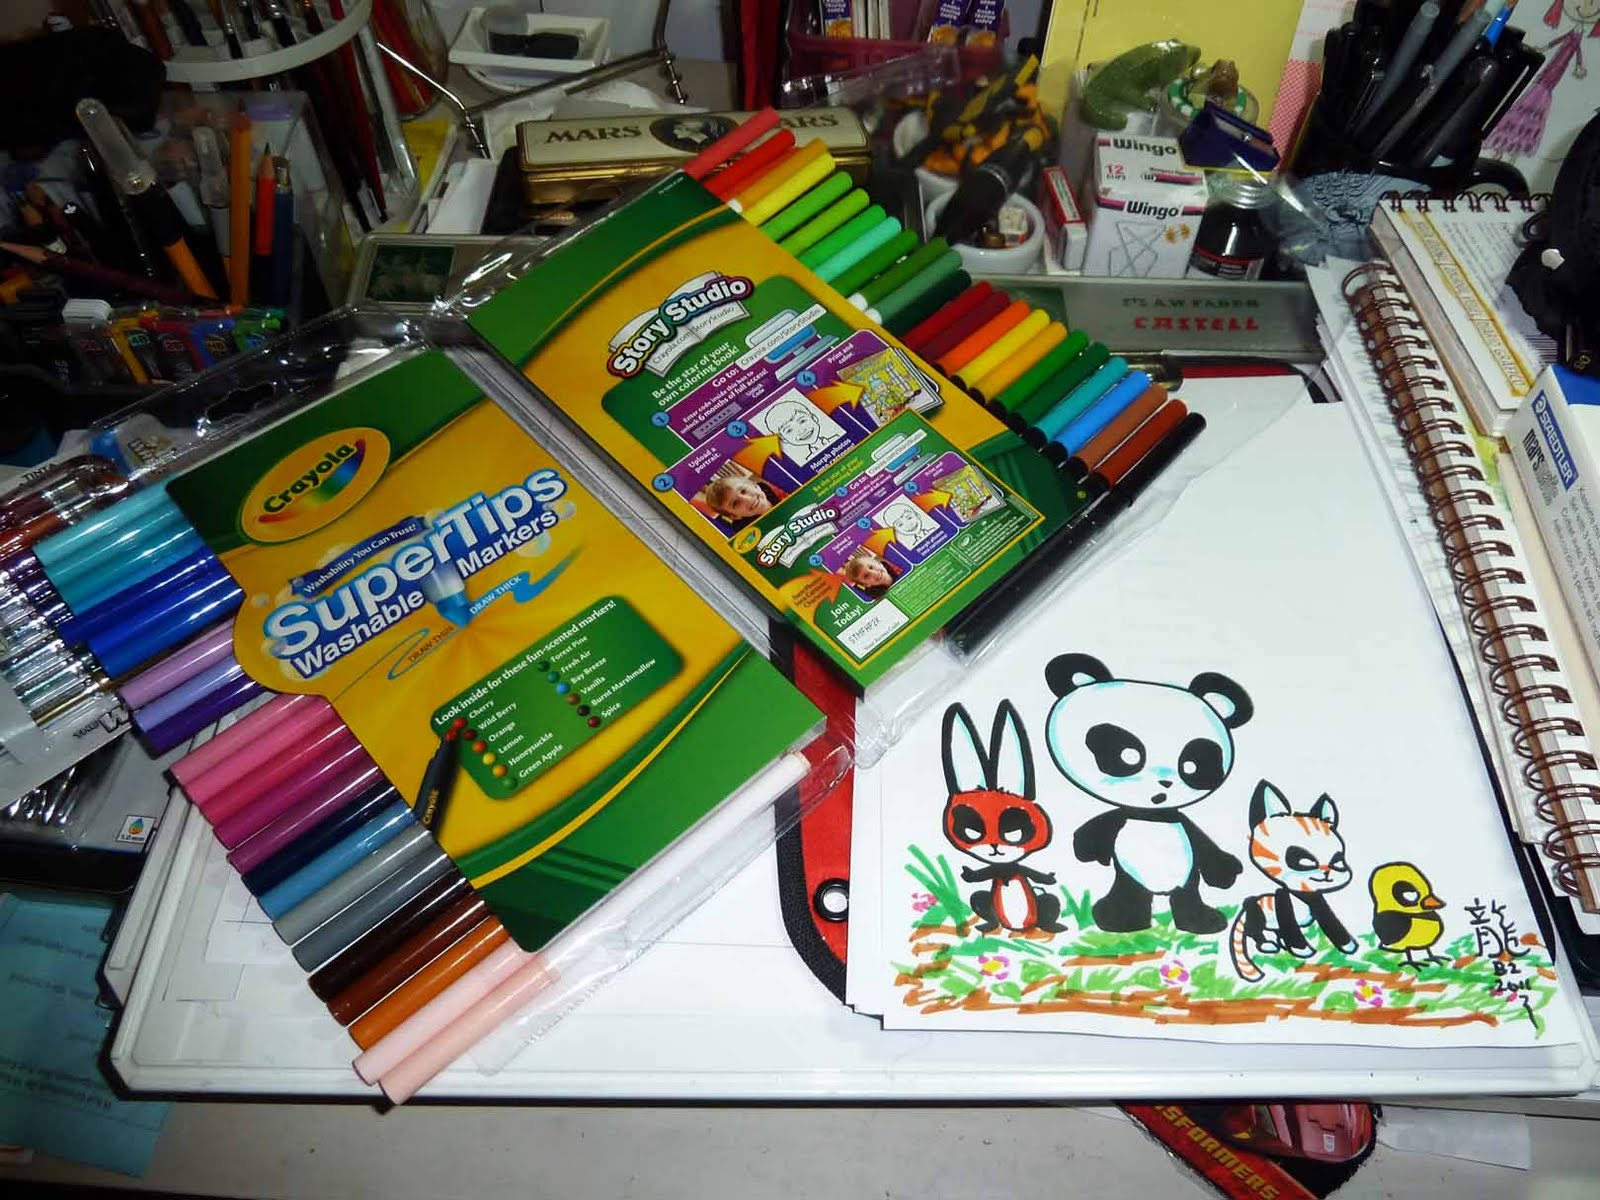 Kid Sketches Drawing Cartoon Panda Characters And Sketching Page